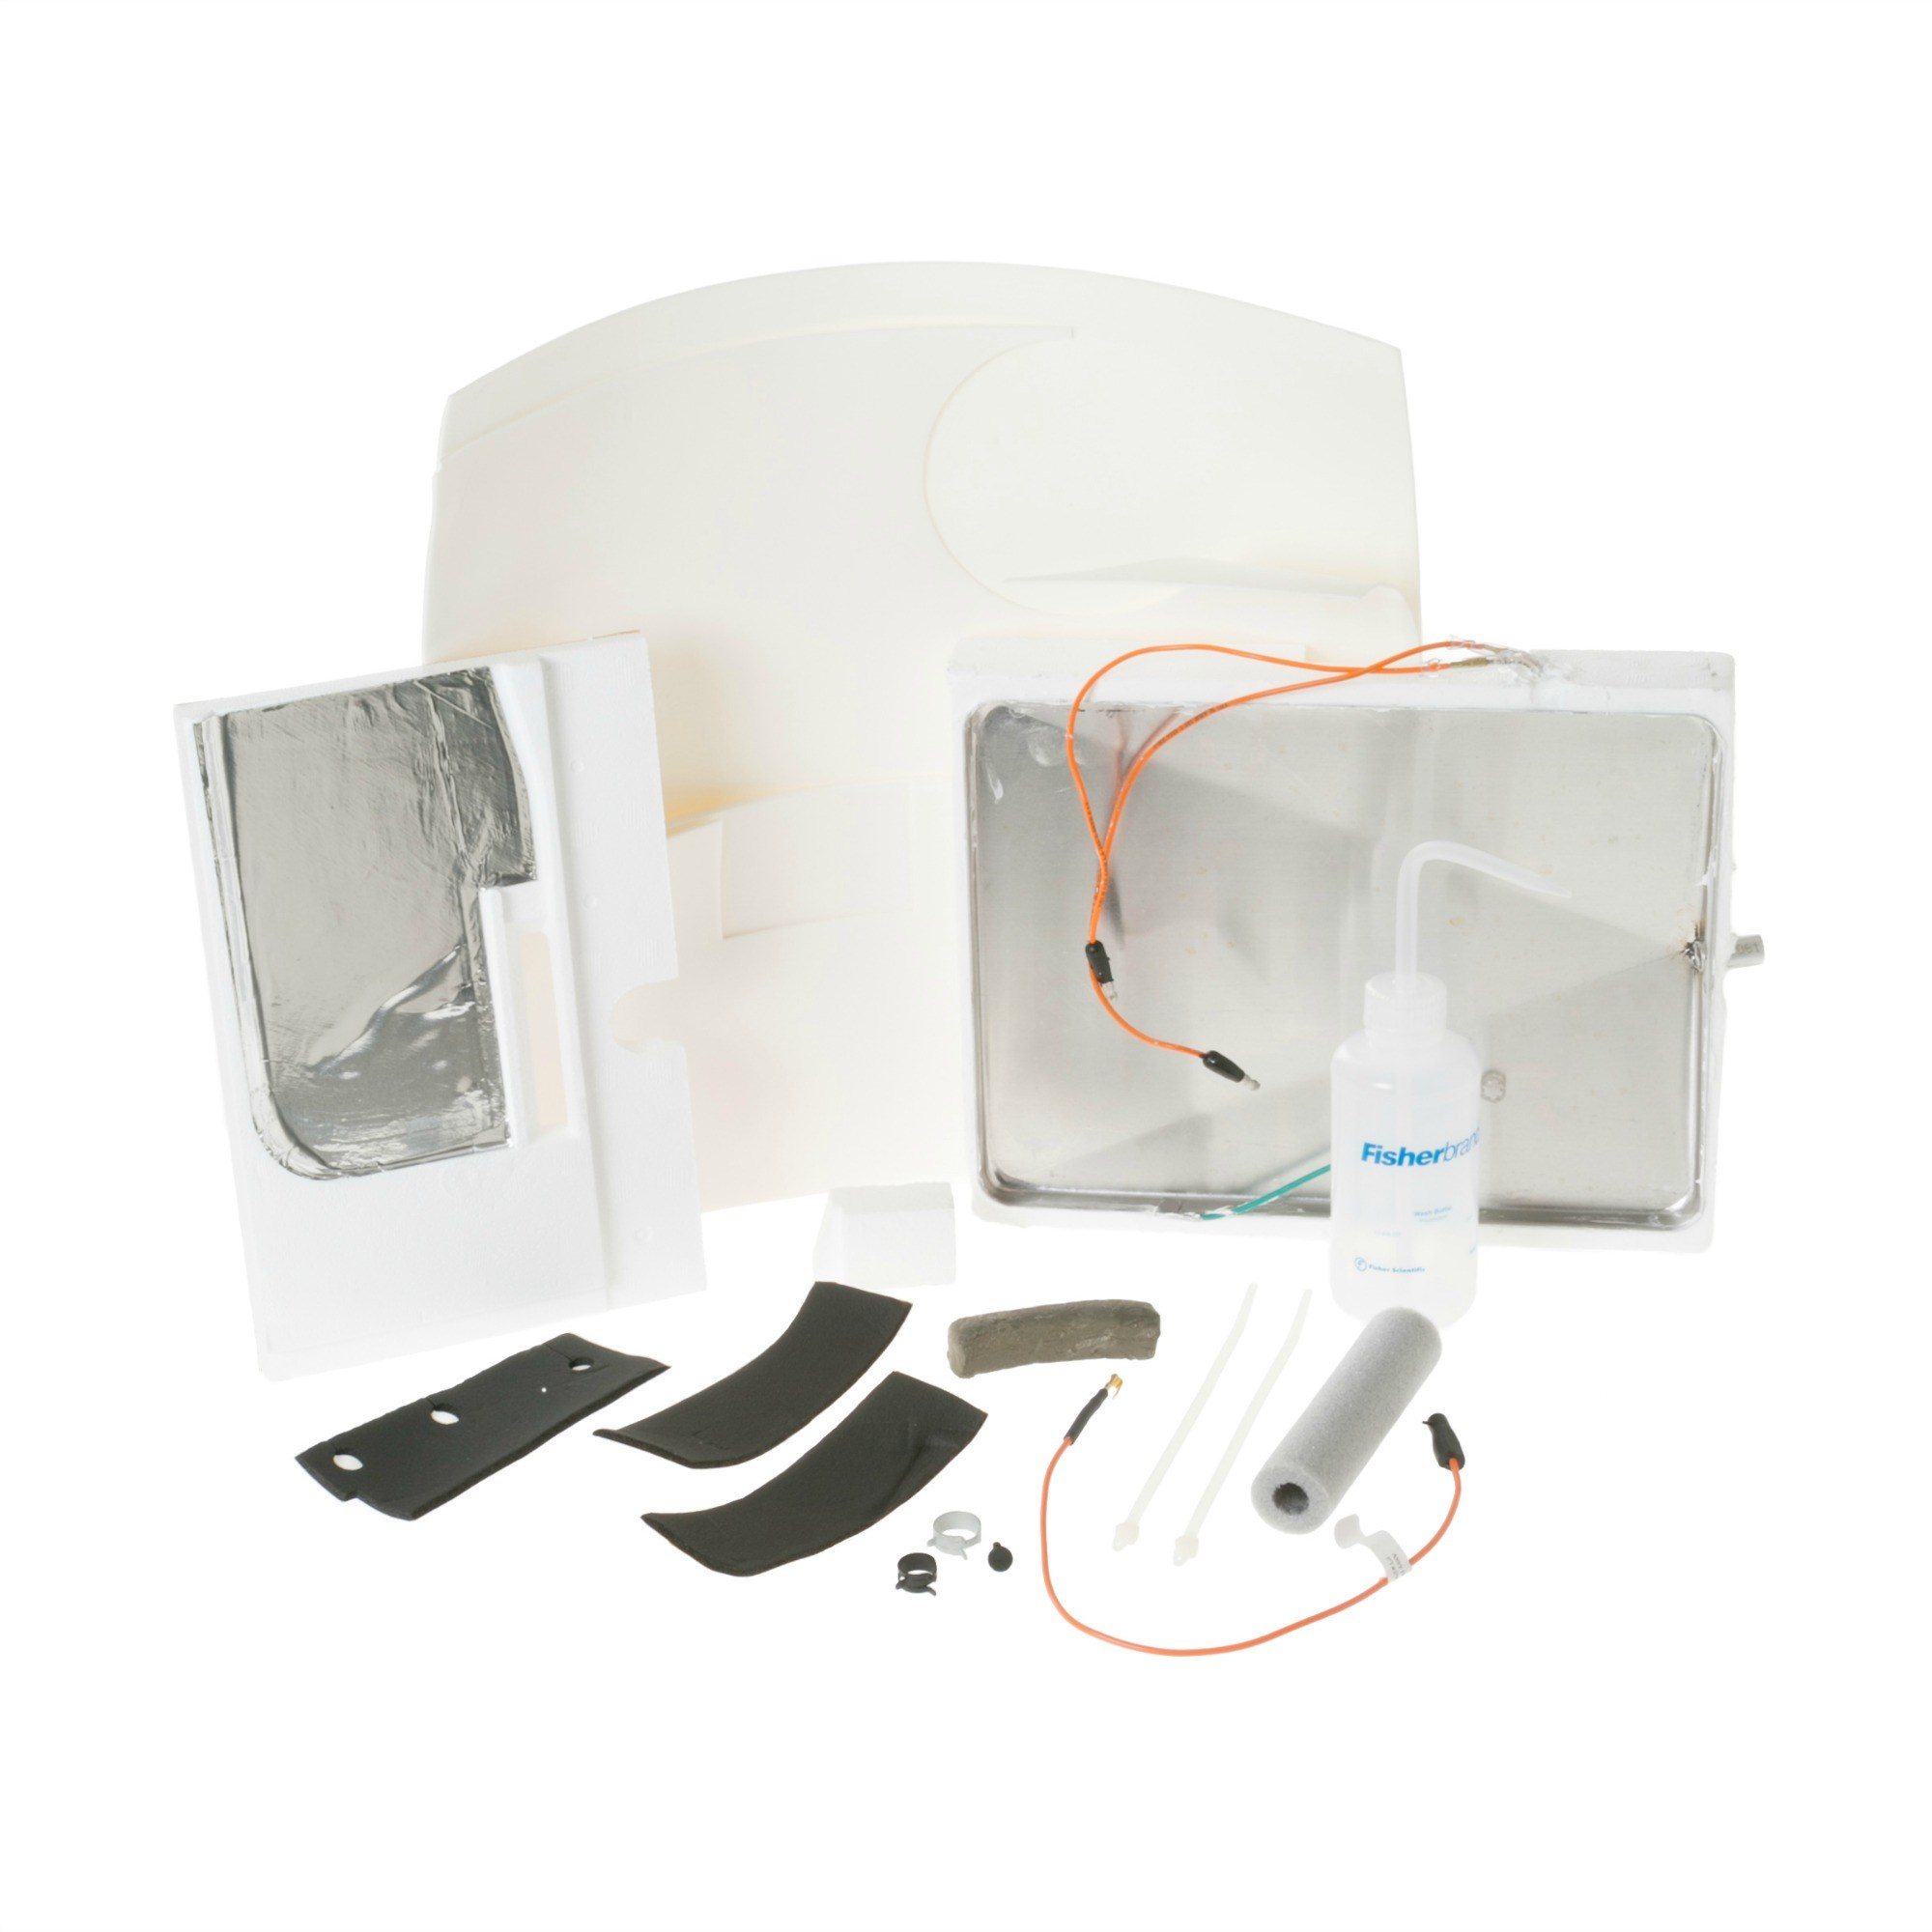 WR49X10021 For GE Refrigerator Icing Repair Kit